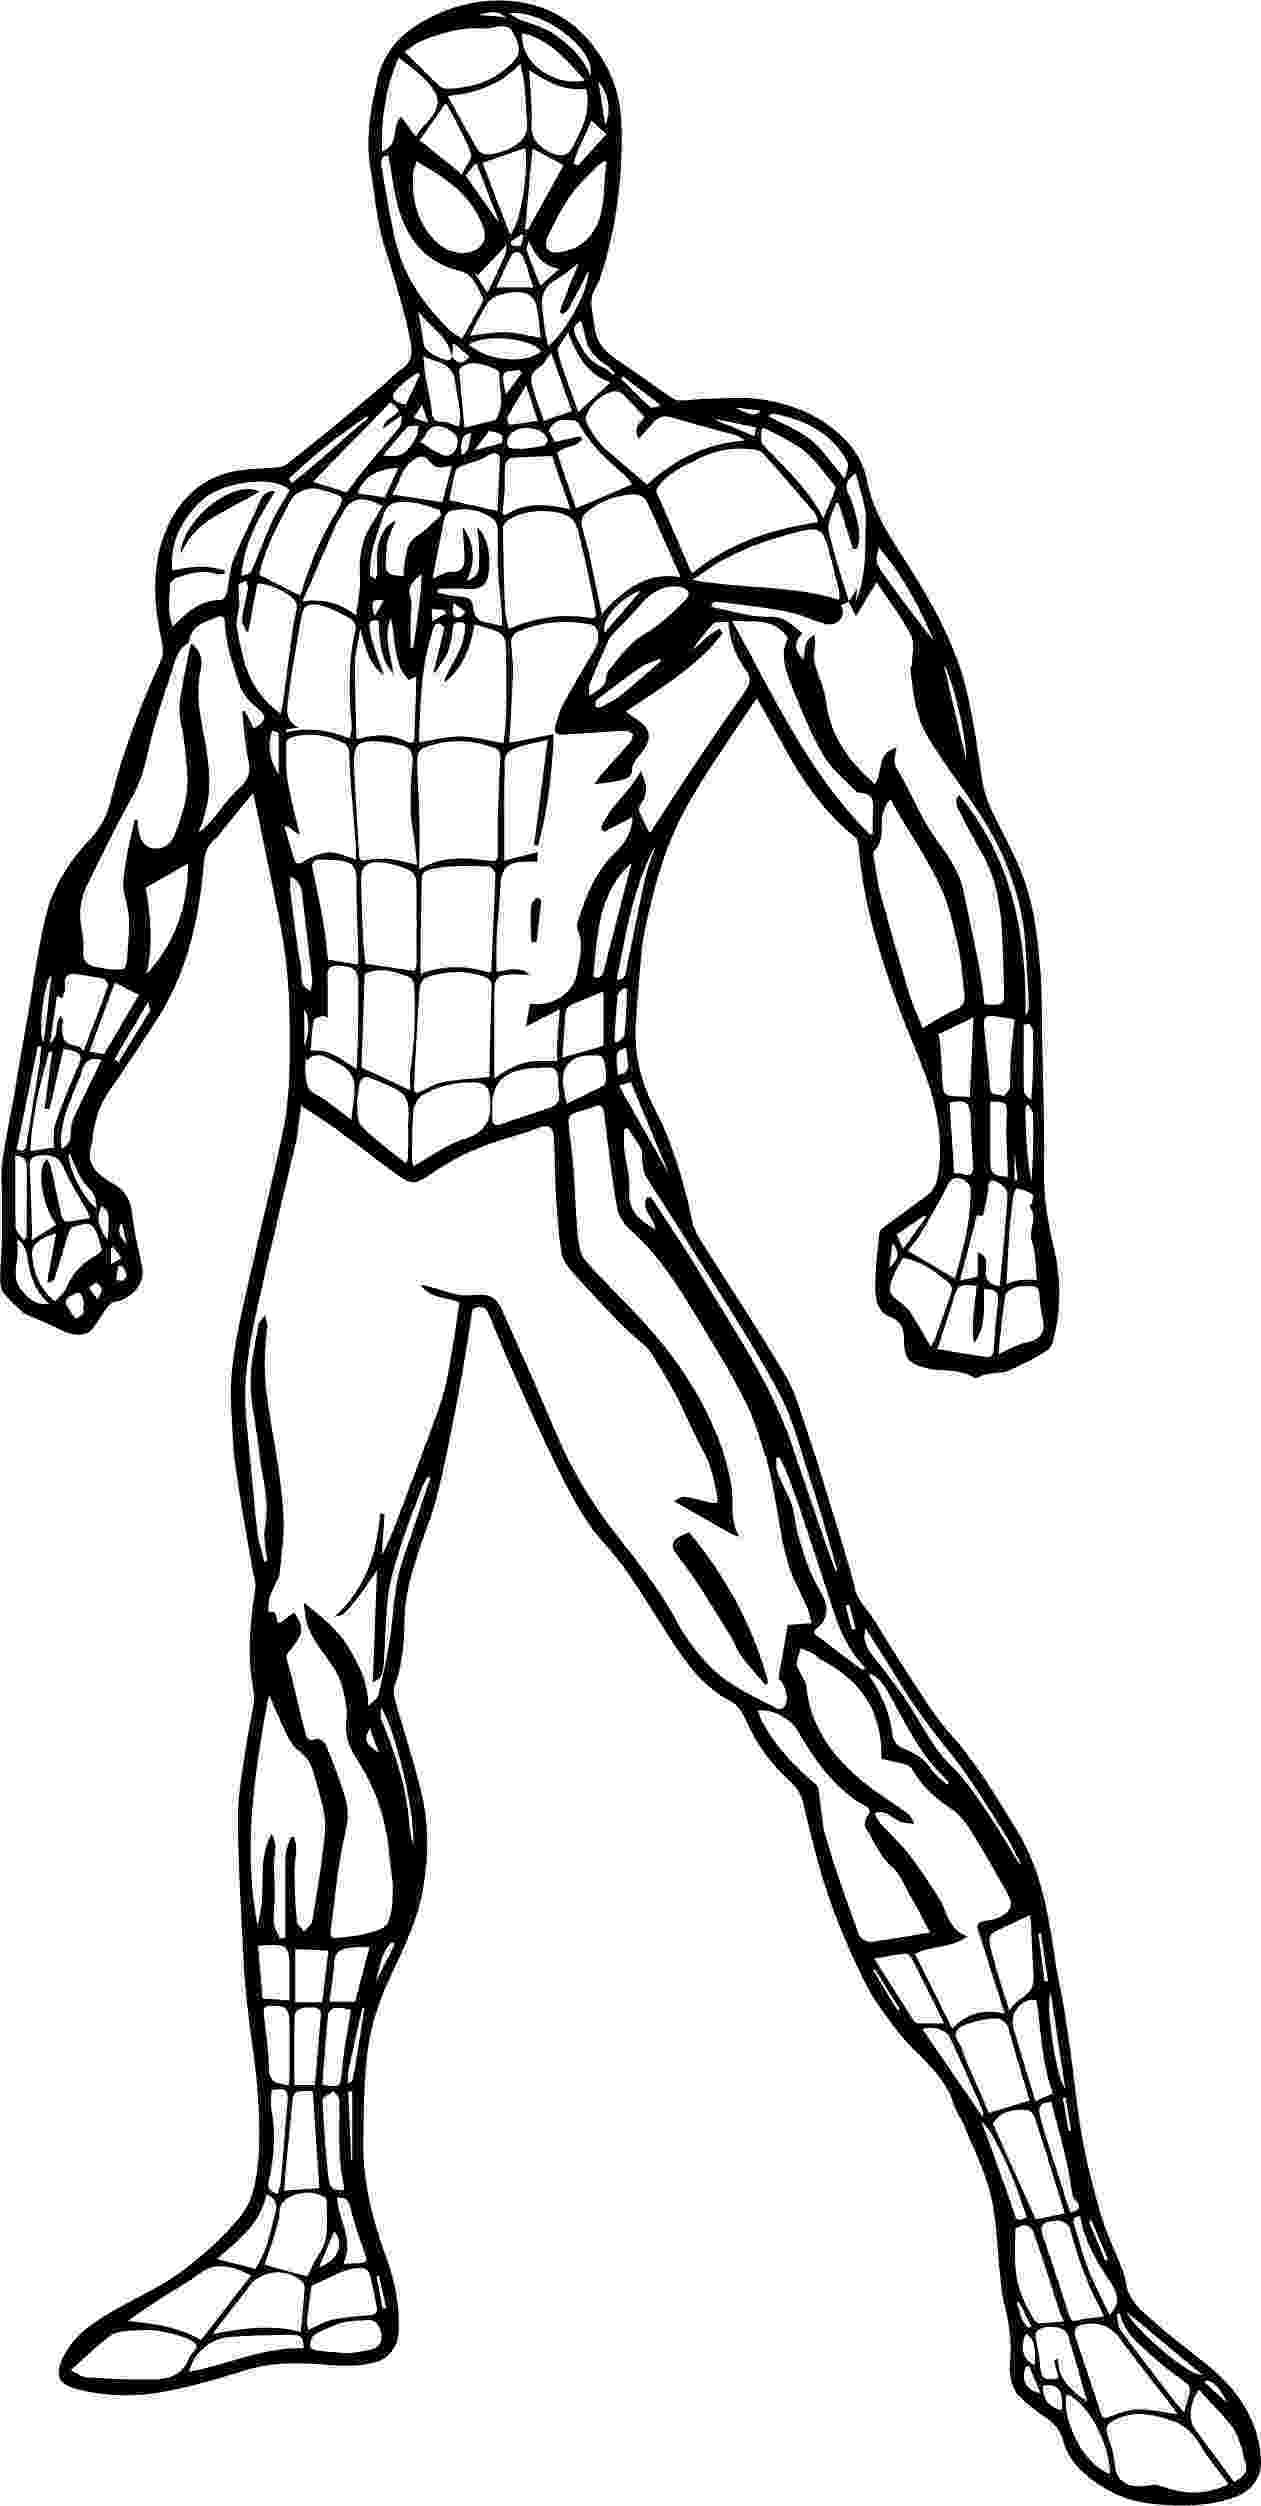 colouring templates spiderman spiderman cartoon drawing at getdrawingscom free for colouring spiderman templates